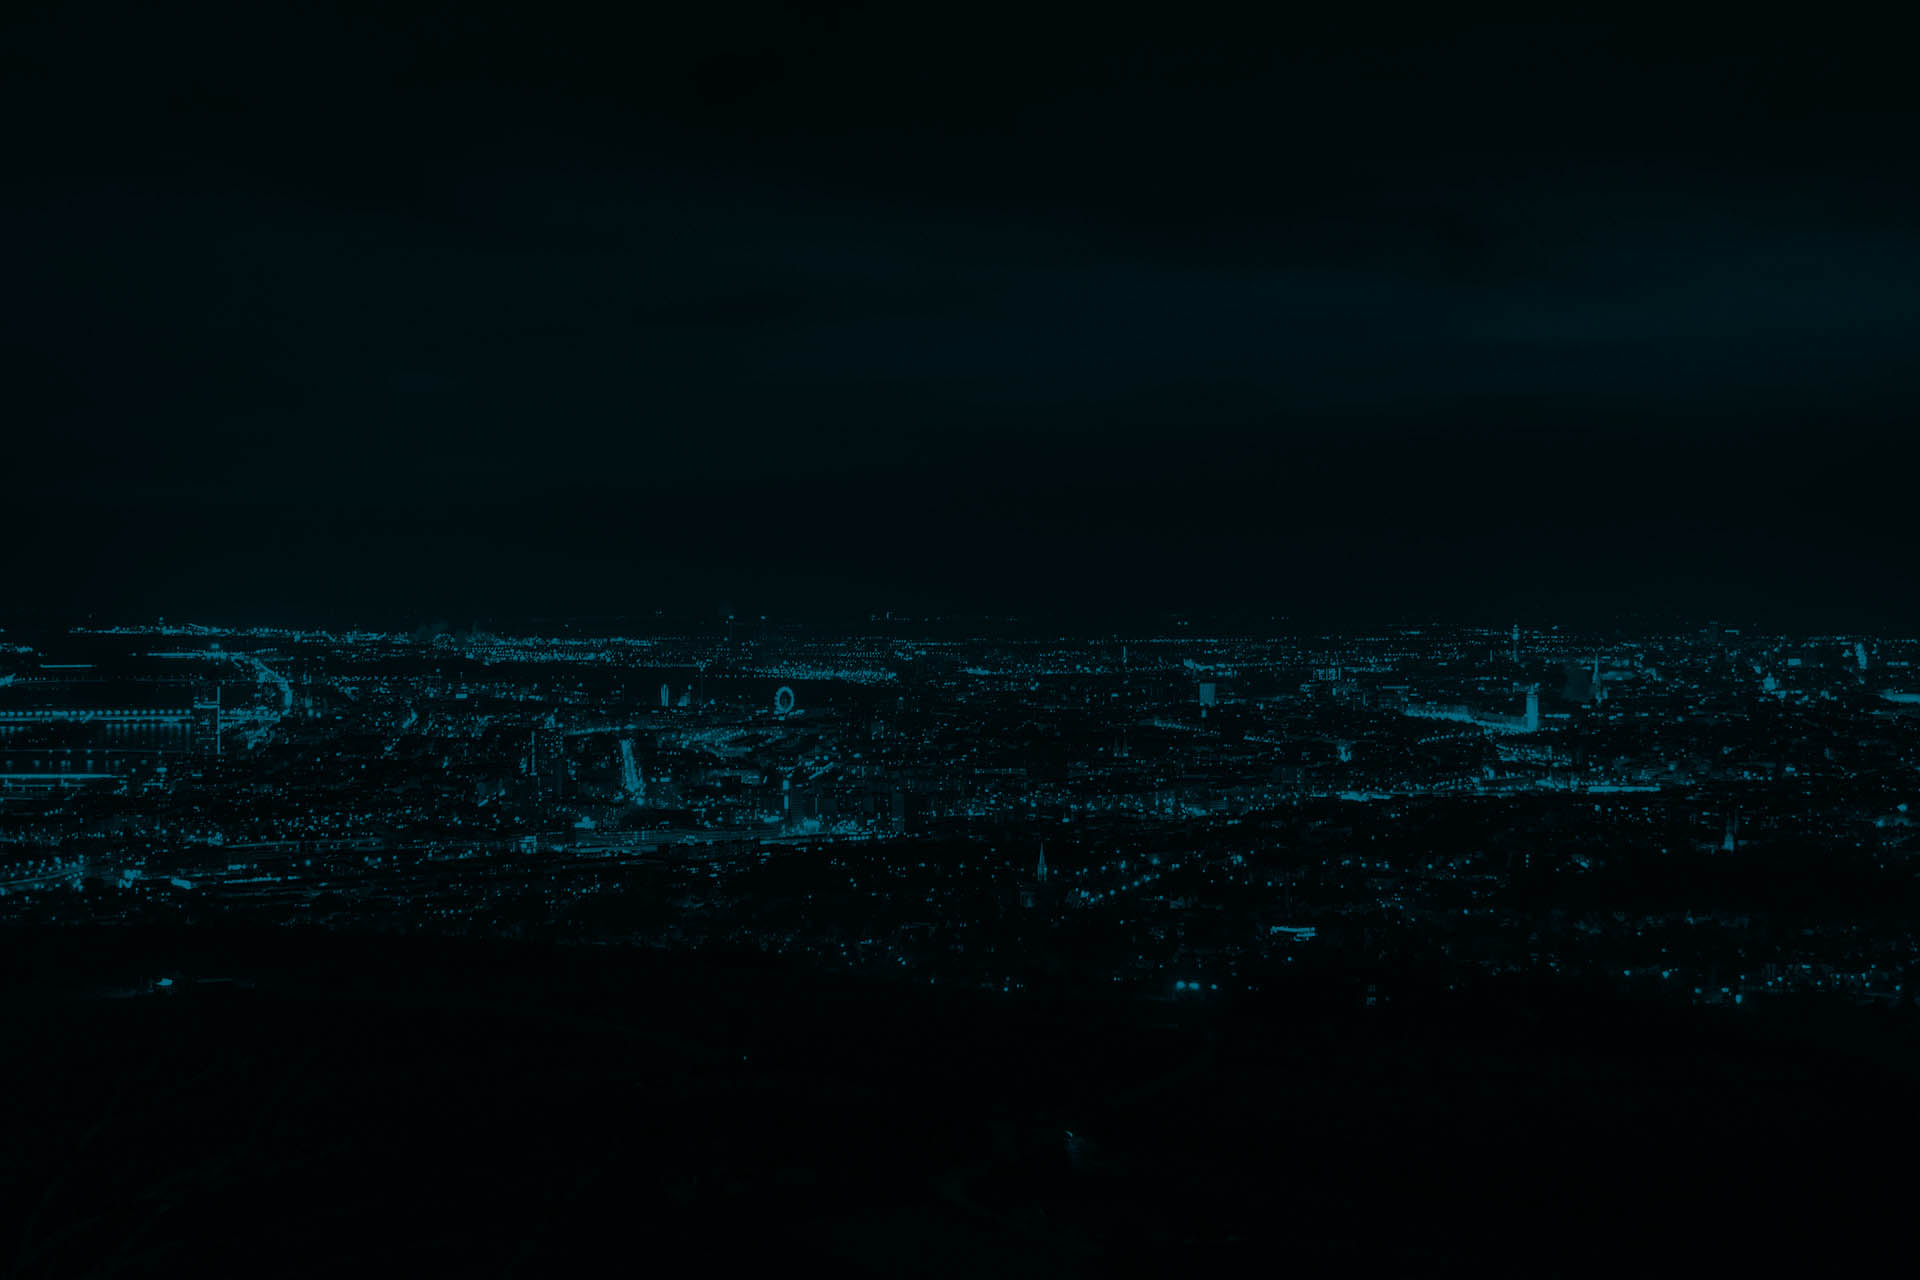 Aerial view of Vienna in the night with a lot of lights from buildings shining.